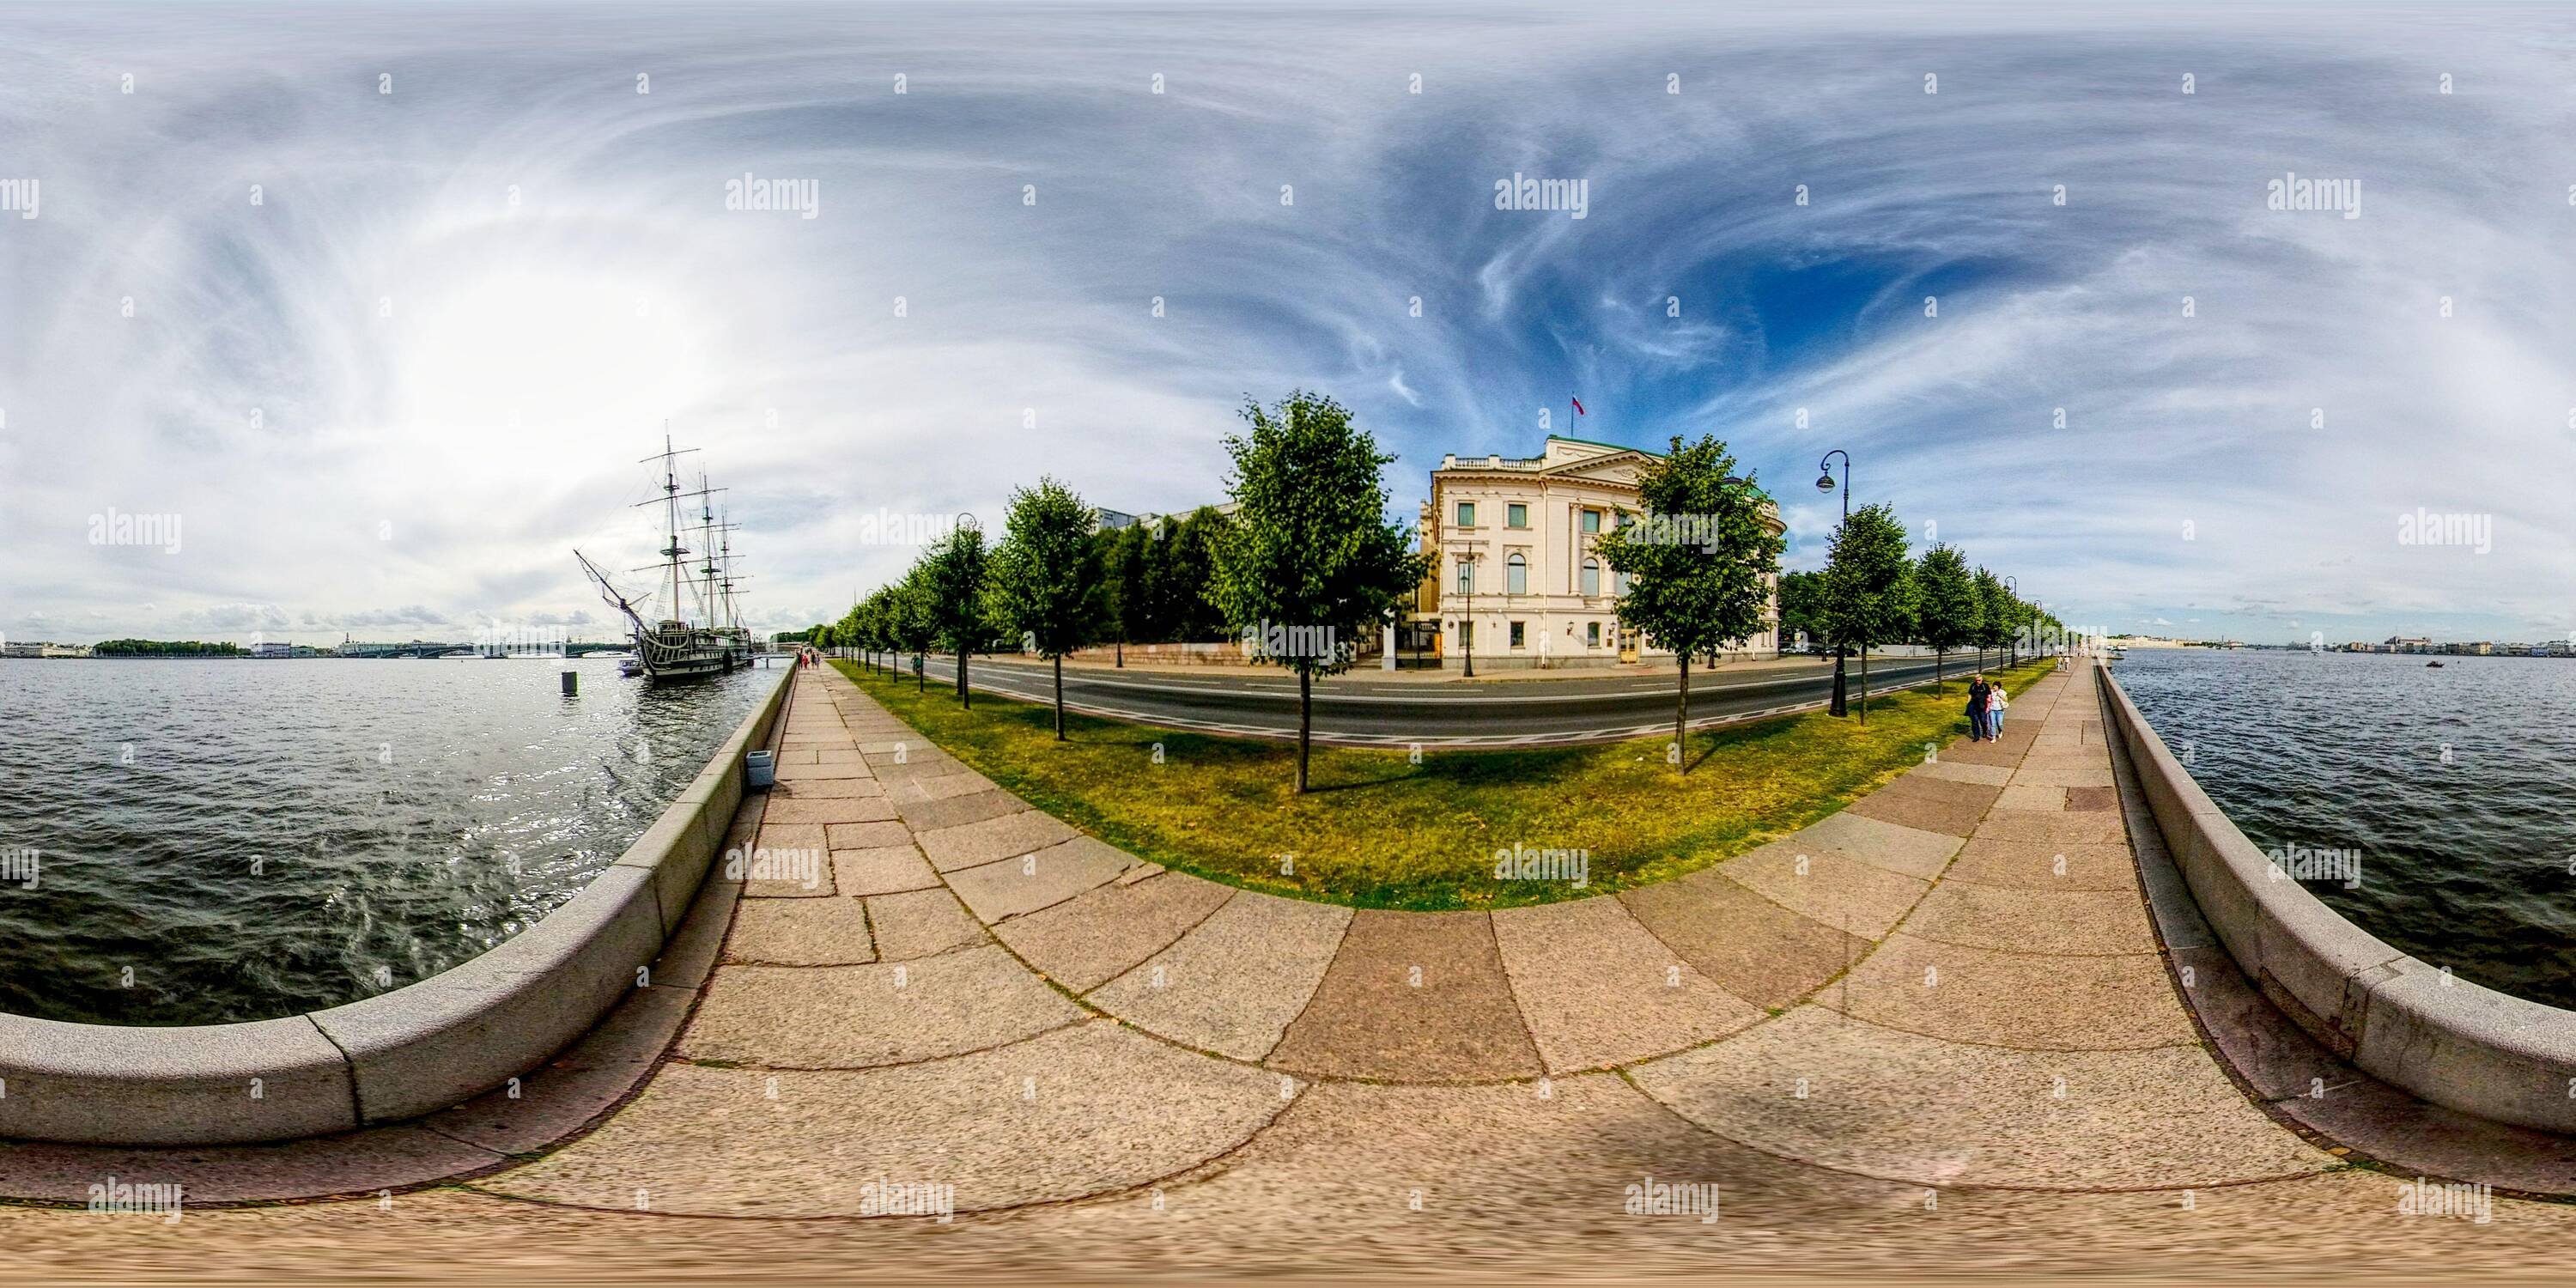 360 degree panoramic view of Neva river granite embankment and bridges. Boat and ship. Classical view of old  down town. St. Petersburg Russia